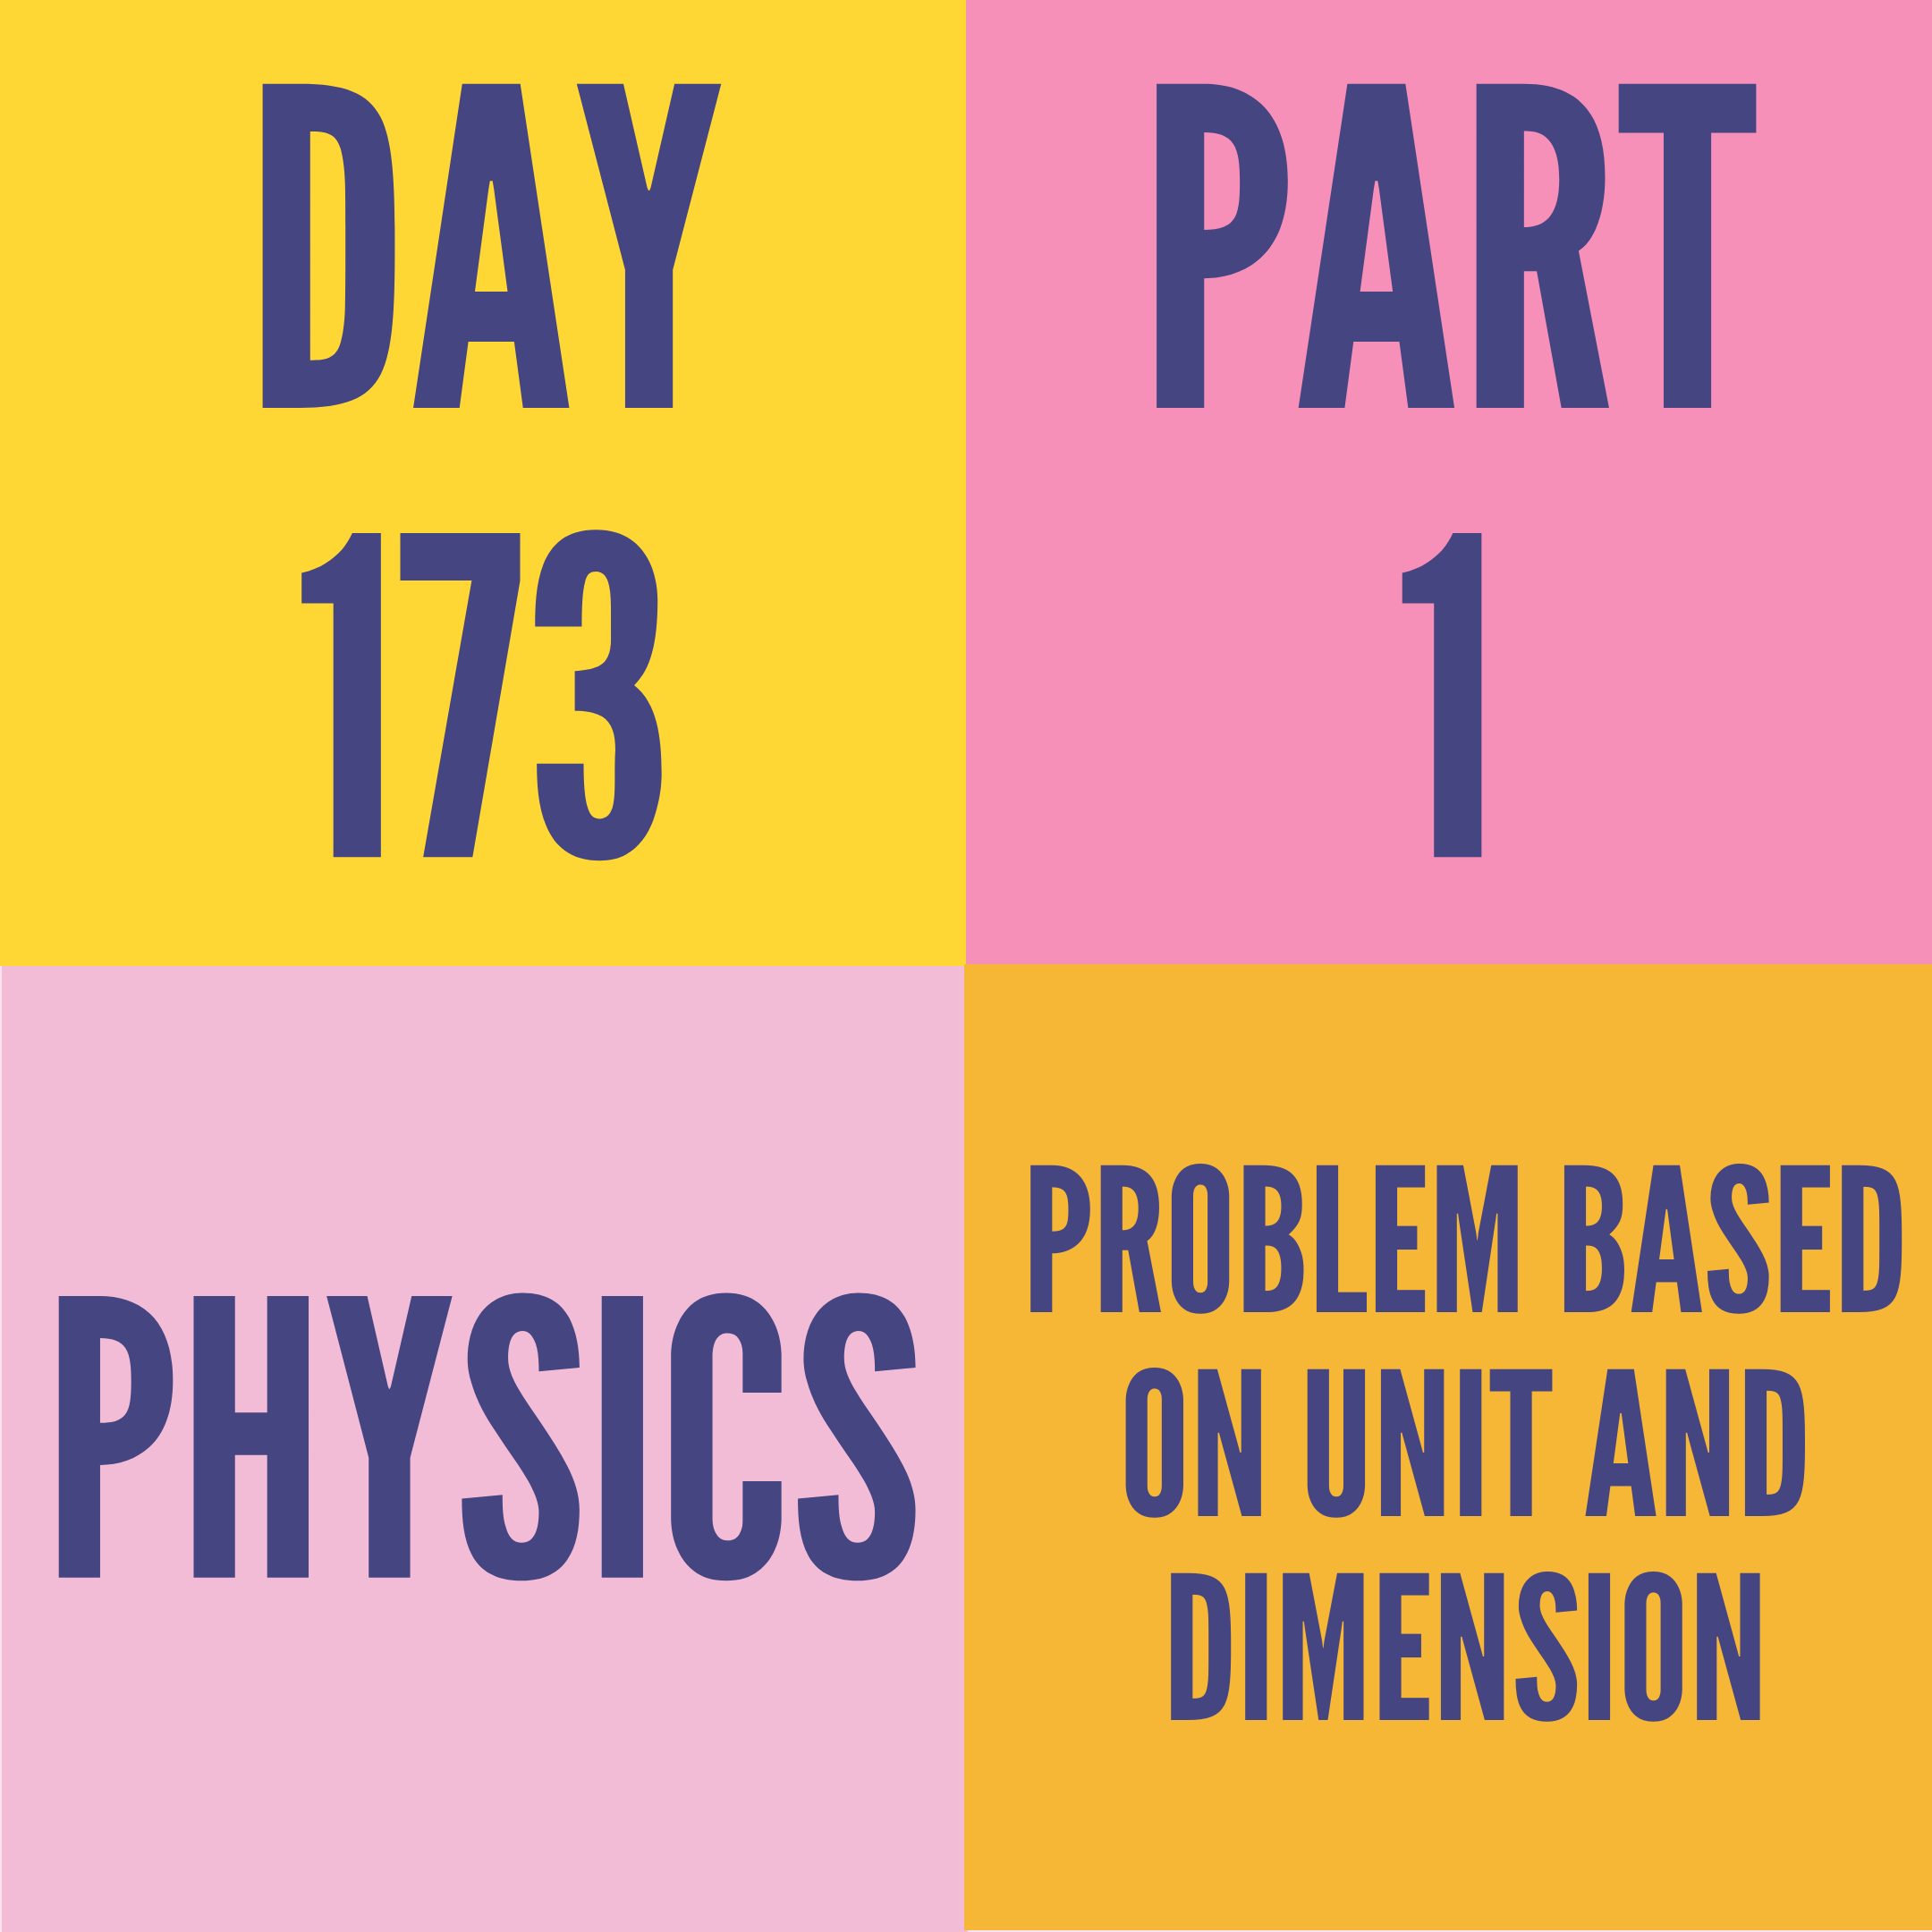 DAY-173 PART-1 PROBLEM BASED ON UNIT AND DIMENSION